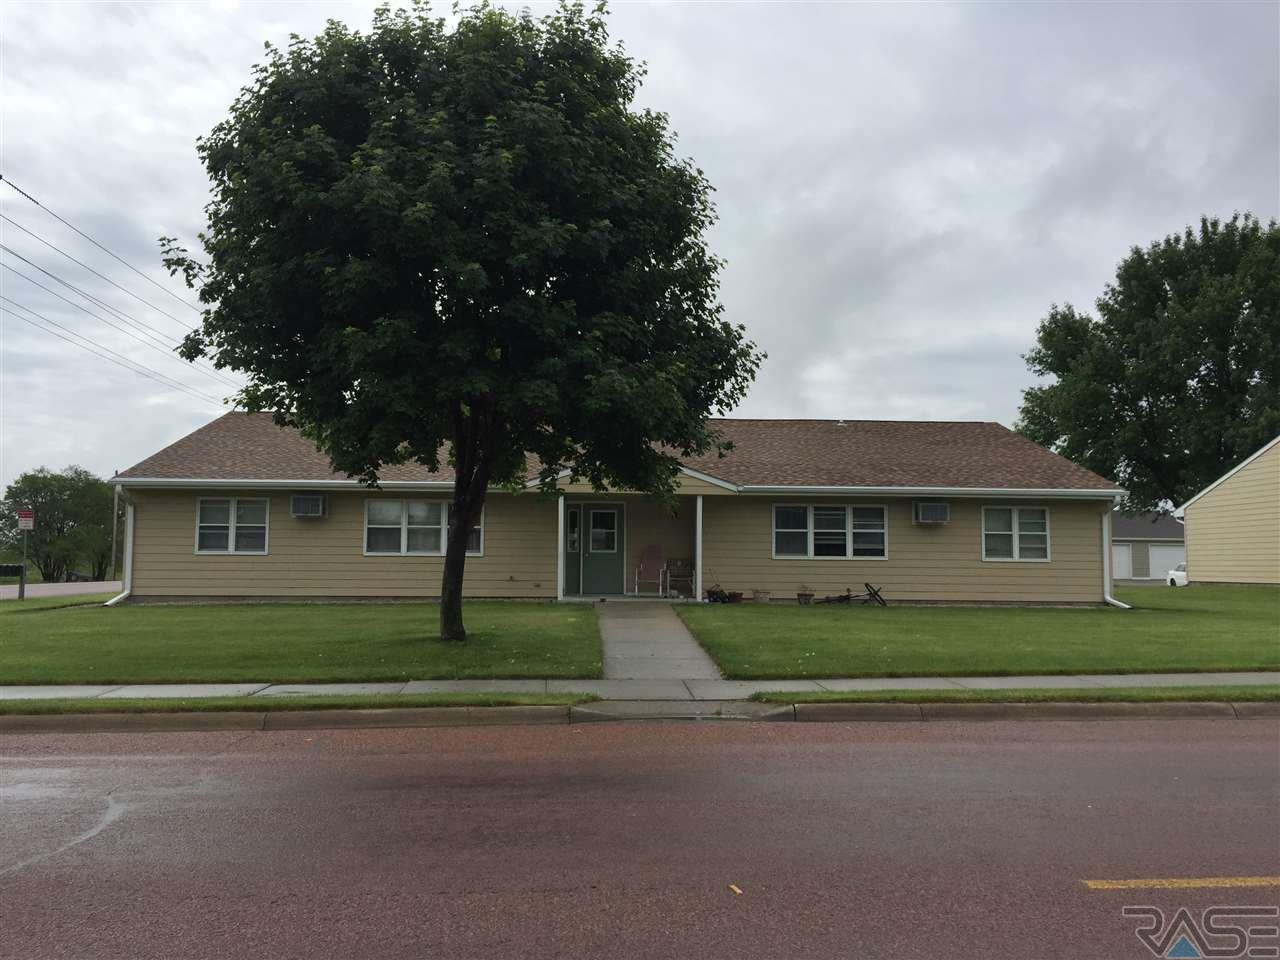 201 209 W Norway Ave, Mitchell, SD 57301